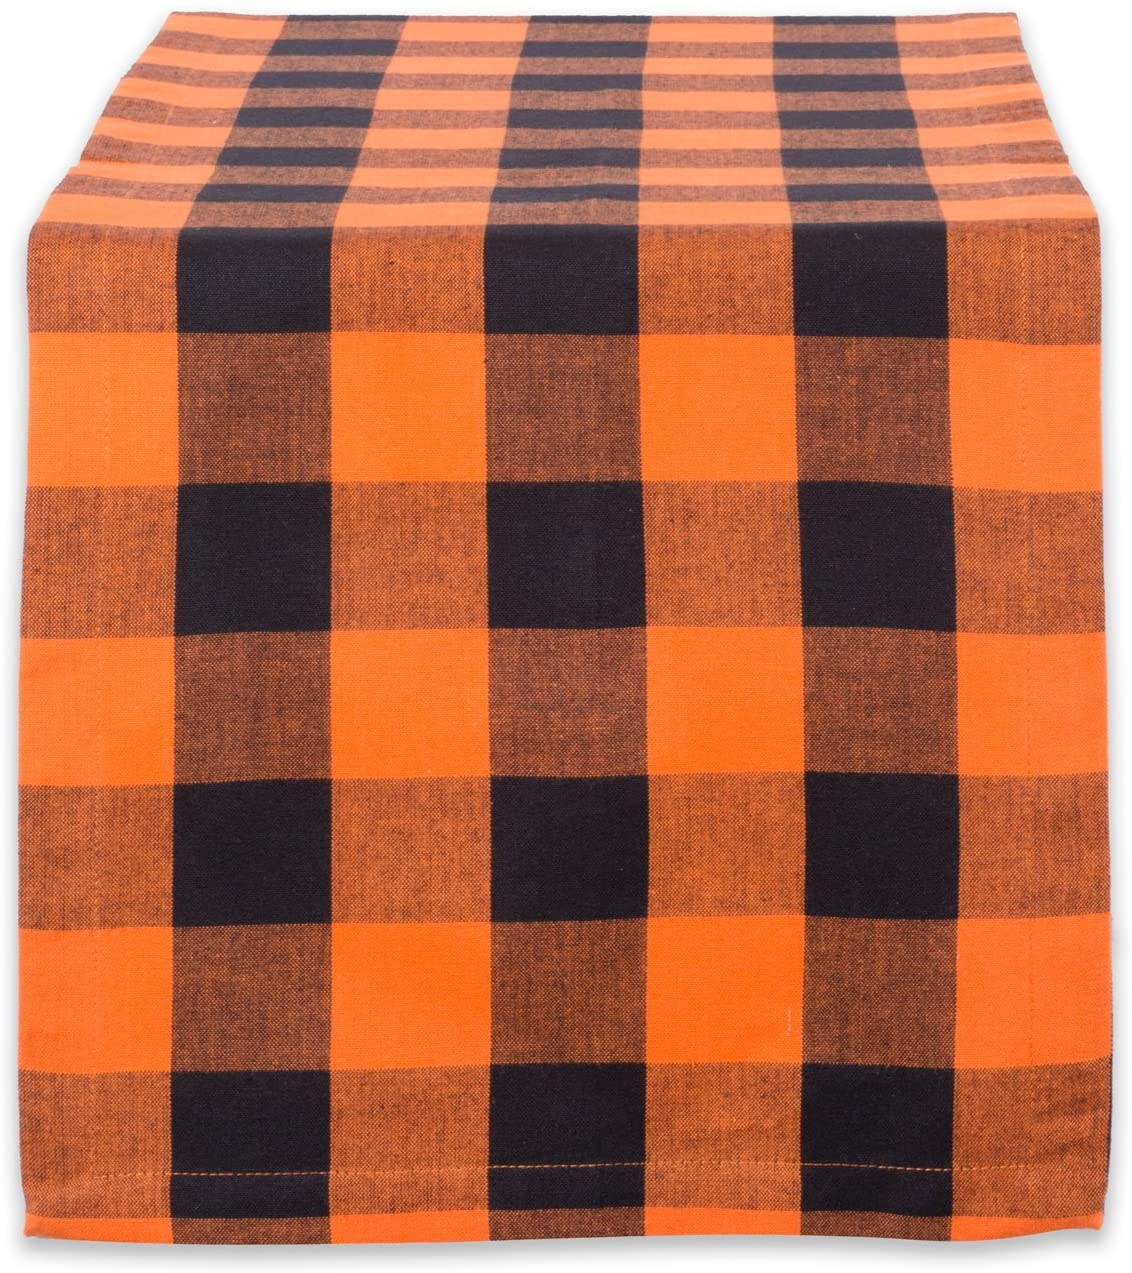 DII Classic Buffalo Check Tabletop Collection for Family Dinners, Special Occasions, Barbeques, Picnics and Everyday Use, 100% Cotton, Machine Washable, Table Runner, 14x108, Orange & Black